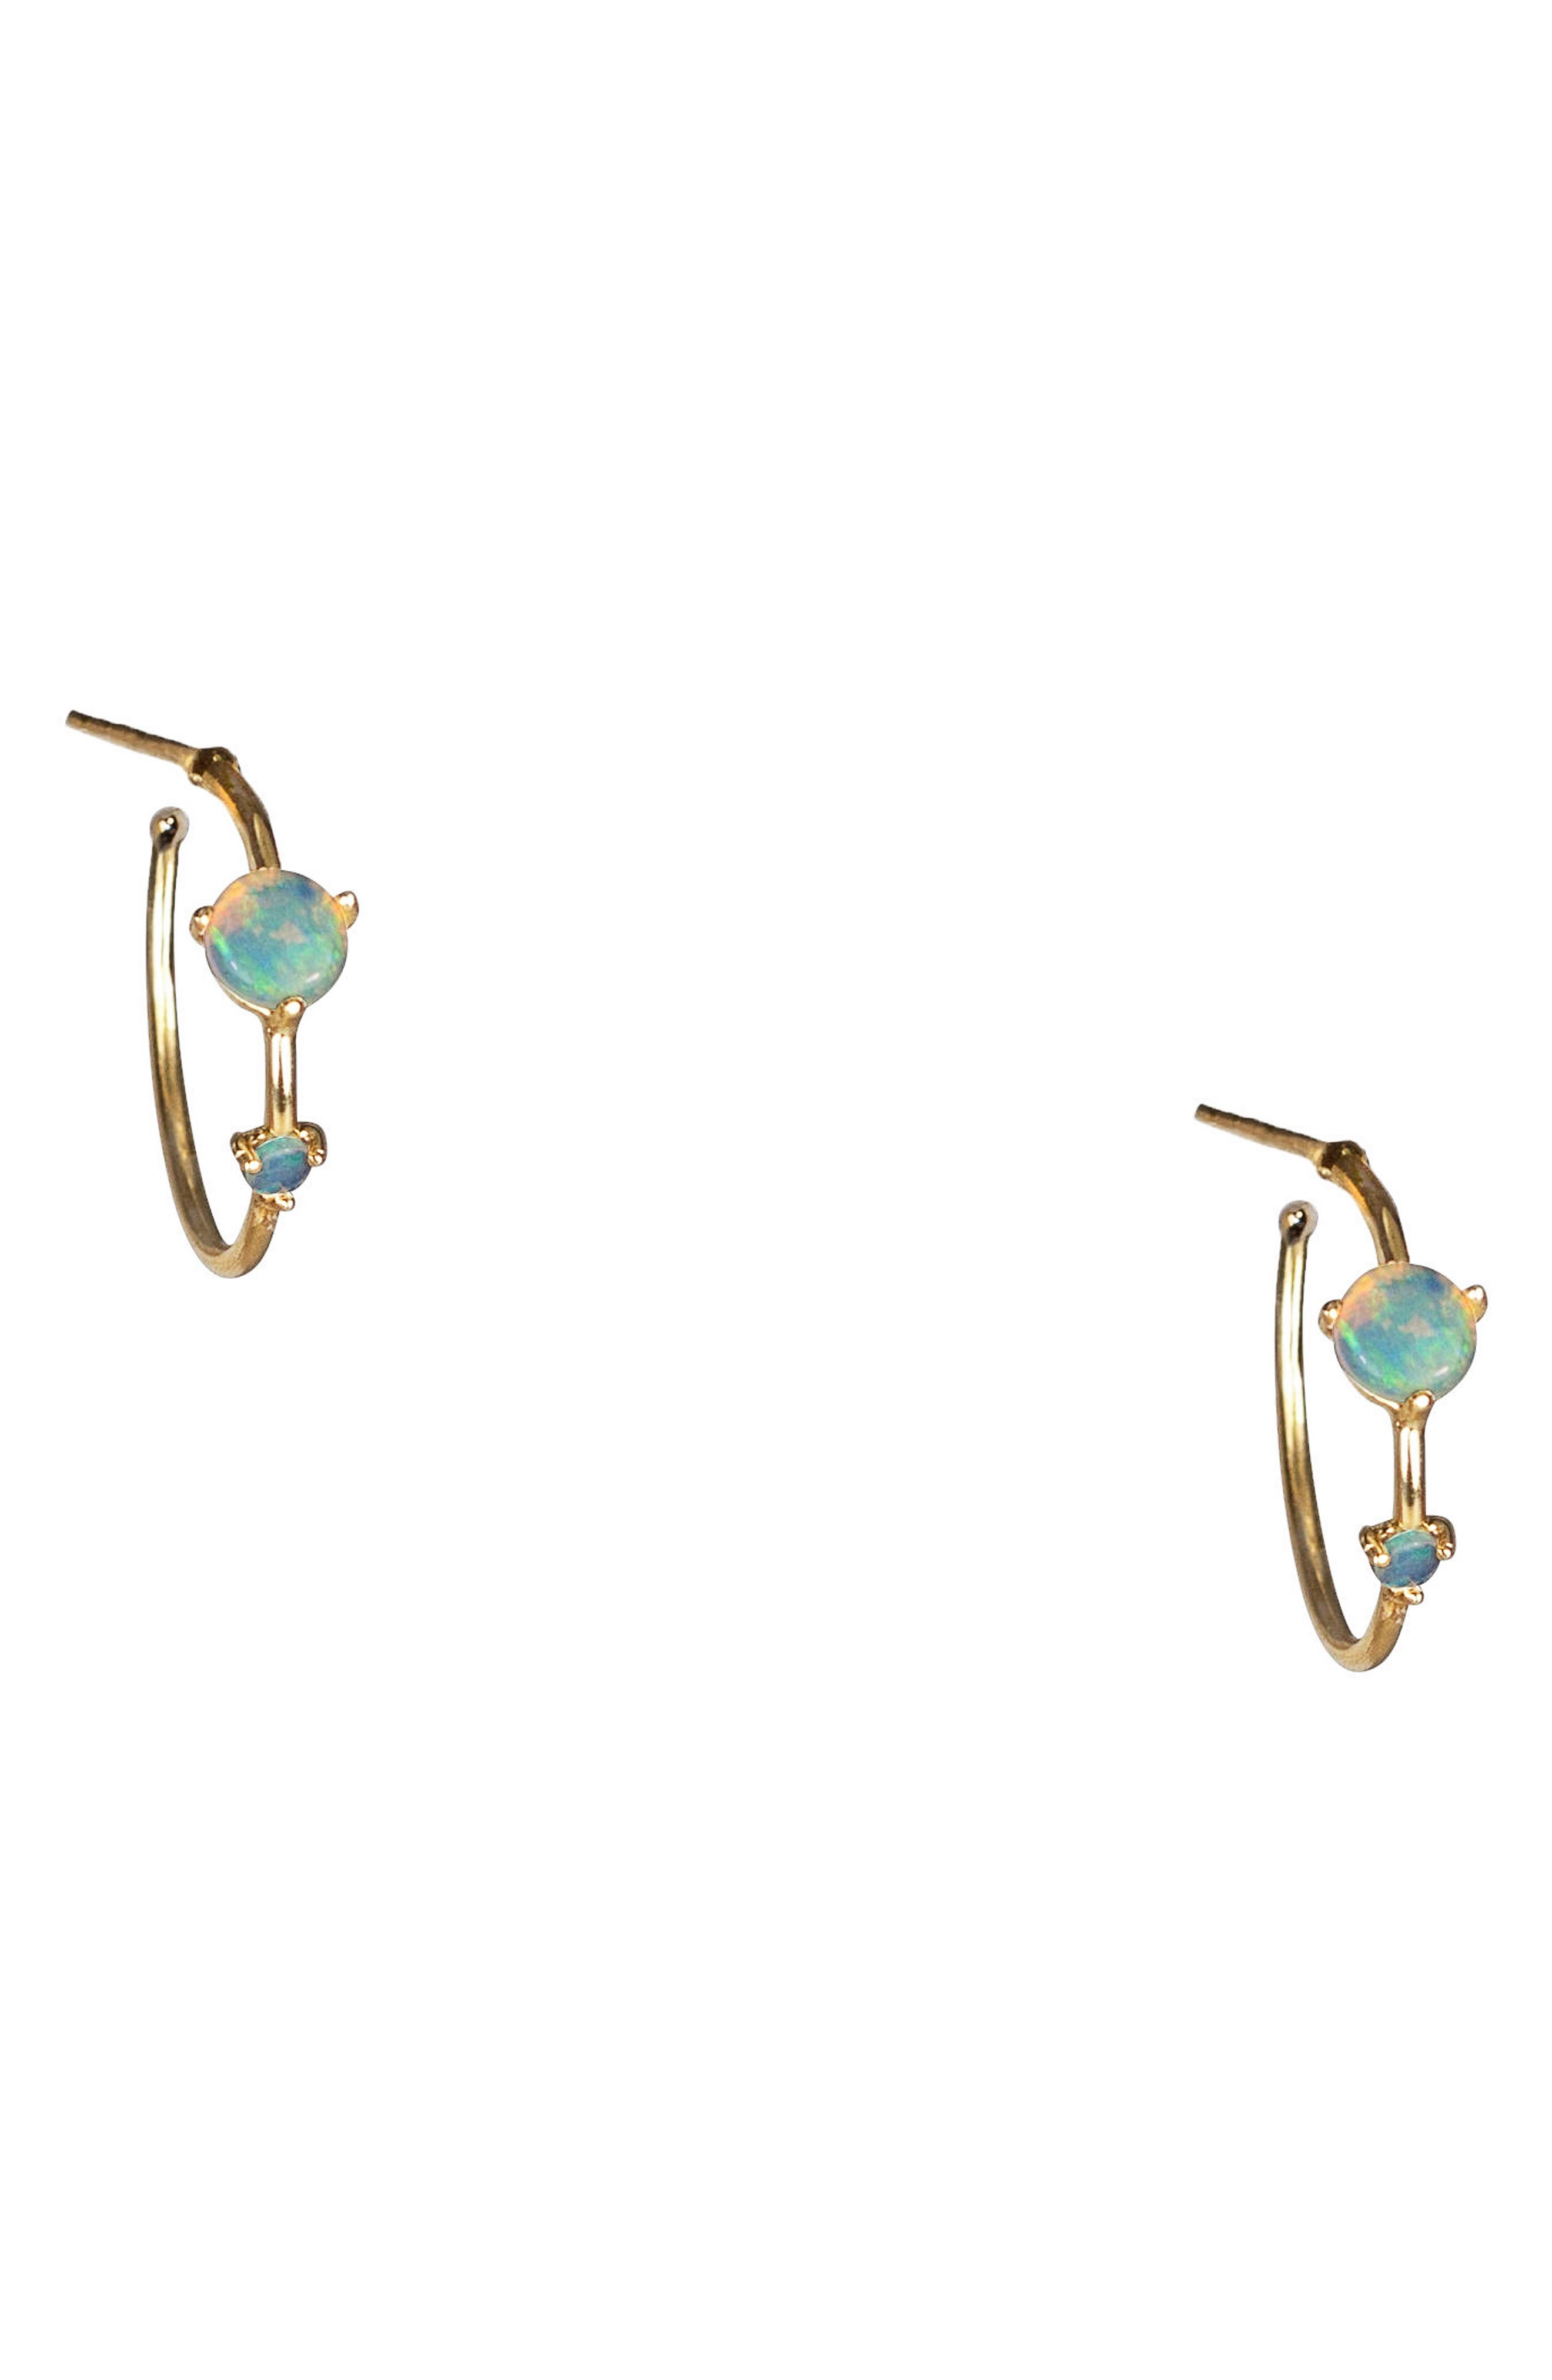 Counting Collection Small Two-Step Opal & Diamond Hoop Earrings,                             Alternate thumbnail 2, color,                             OPAL